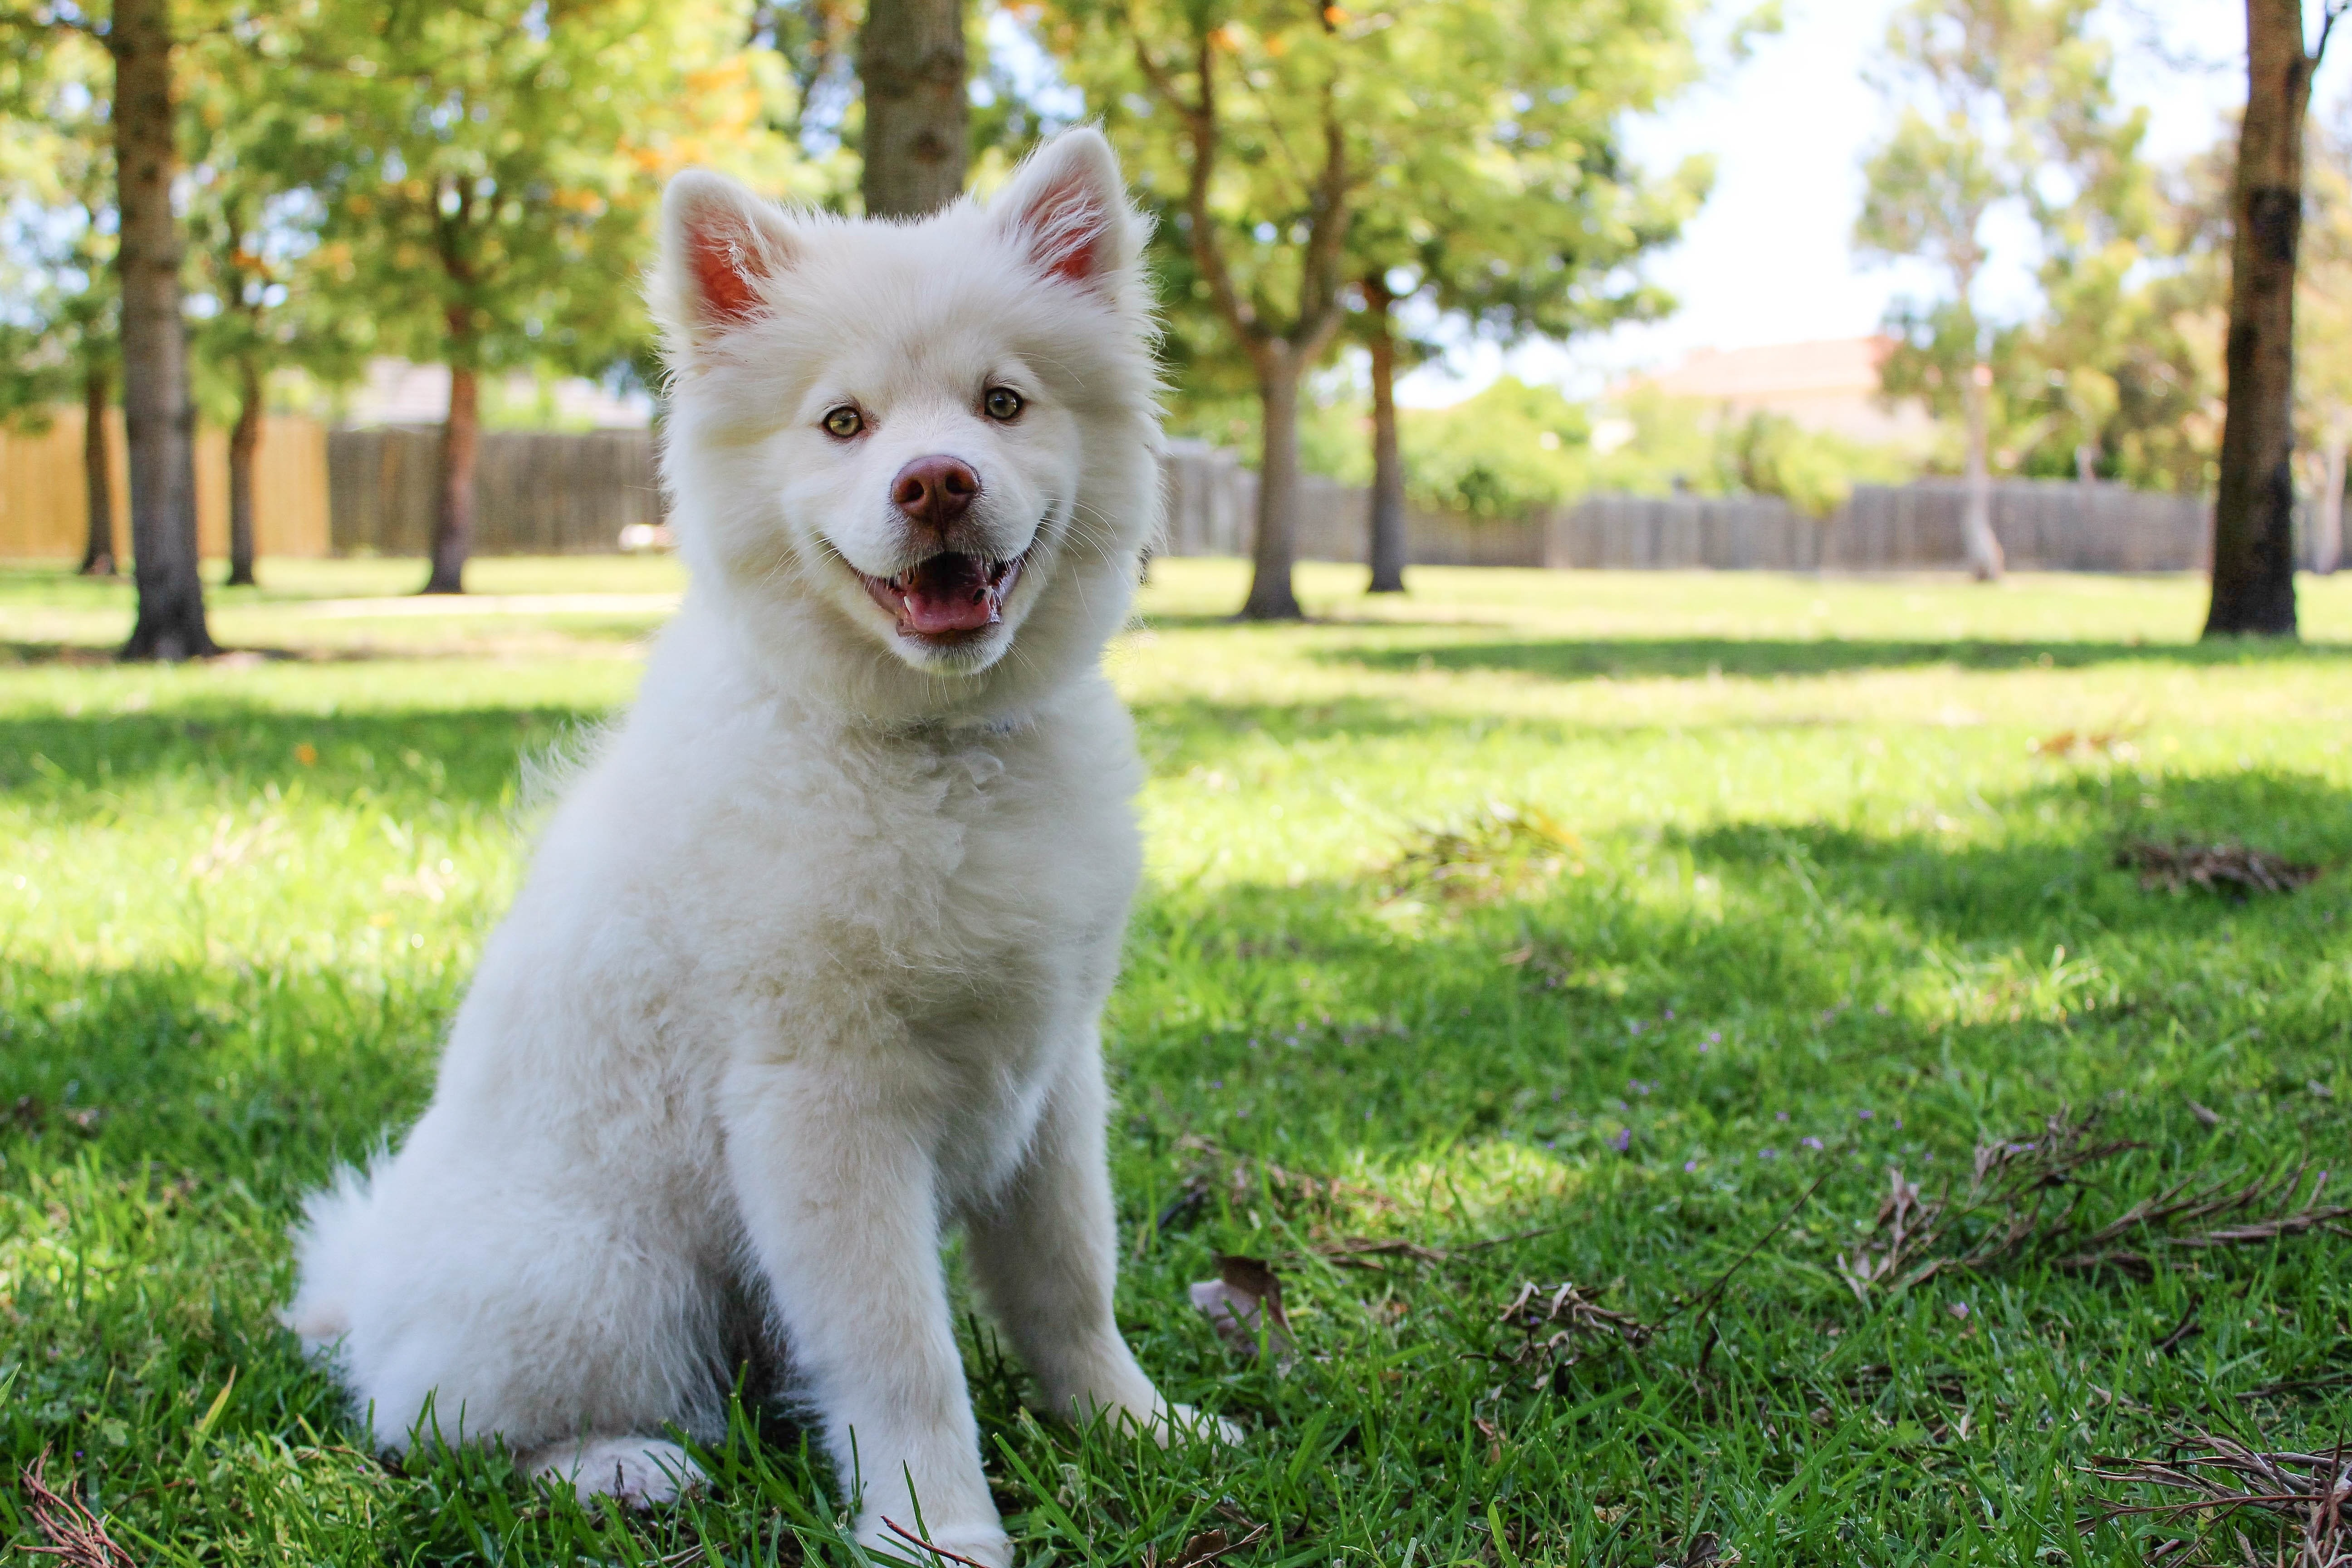 Close-up of Dog  on Grass, Adorable, Mammal, Weather, Warm, HQ Photo